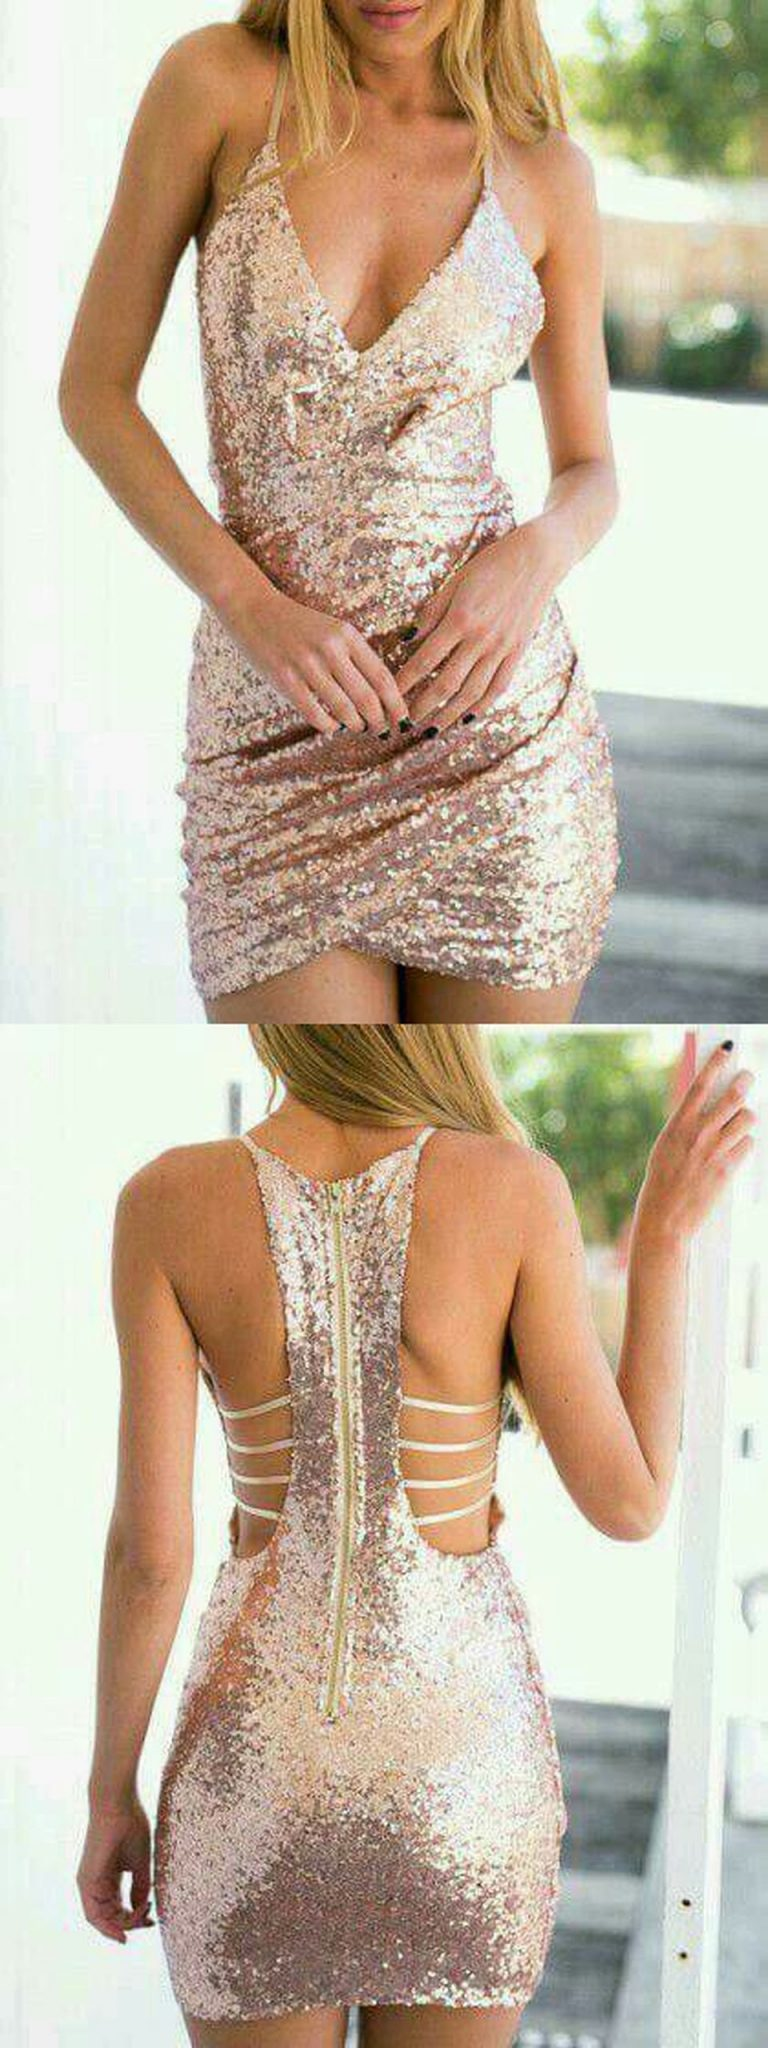 Sequin dress for new year eve party and night out 29